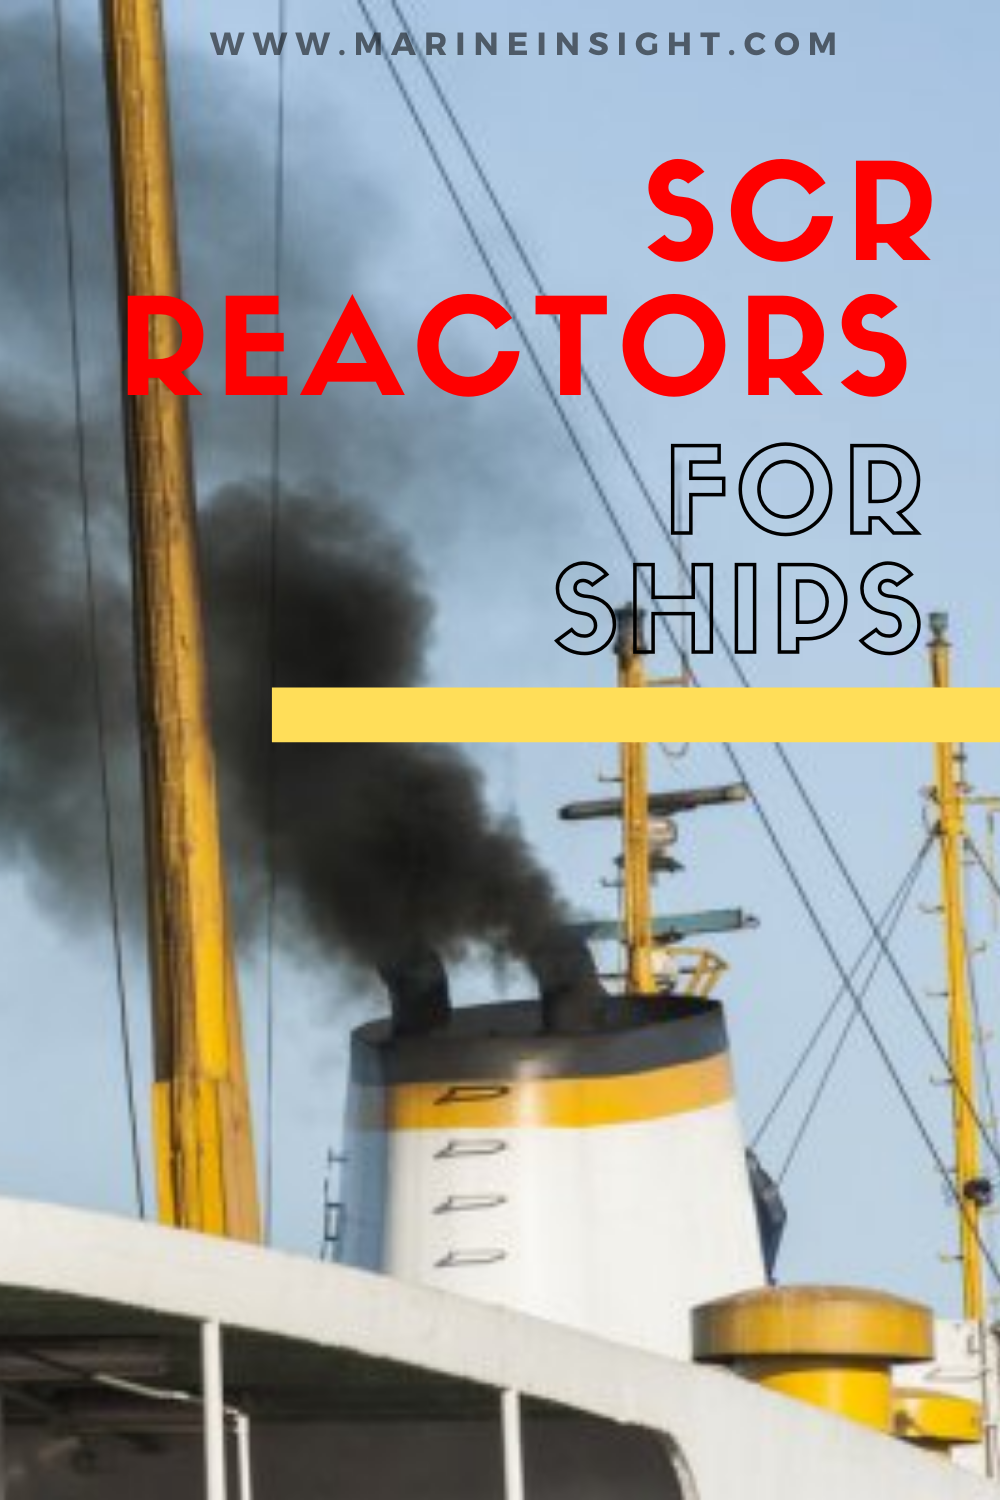 Selective Catalytic Reduction Scr Reactors For Ships Types Working Principle Advantages And Disadvantages Greenhouse Gases Marine Pollution Nitrogen Dioxide